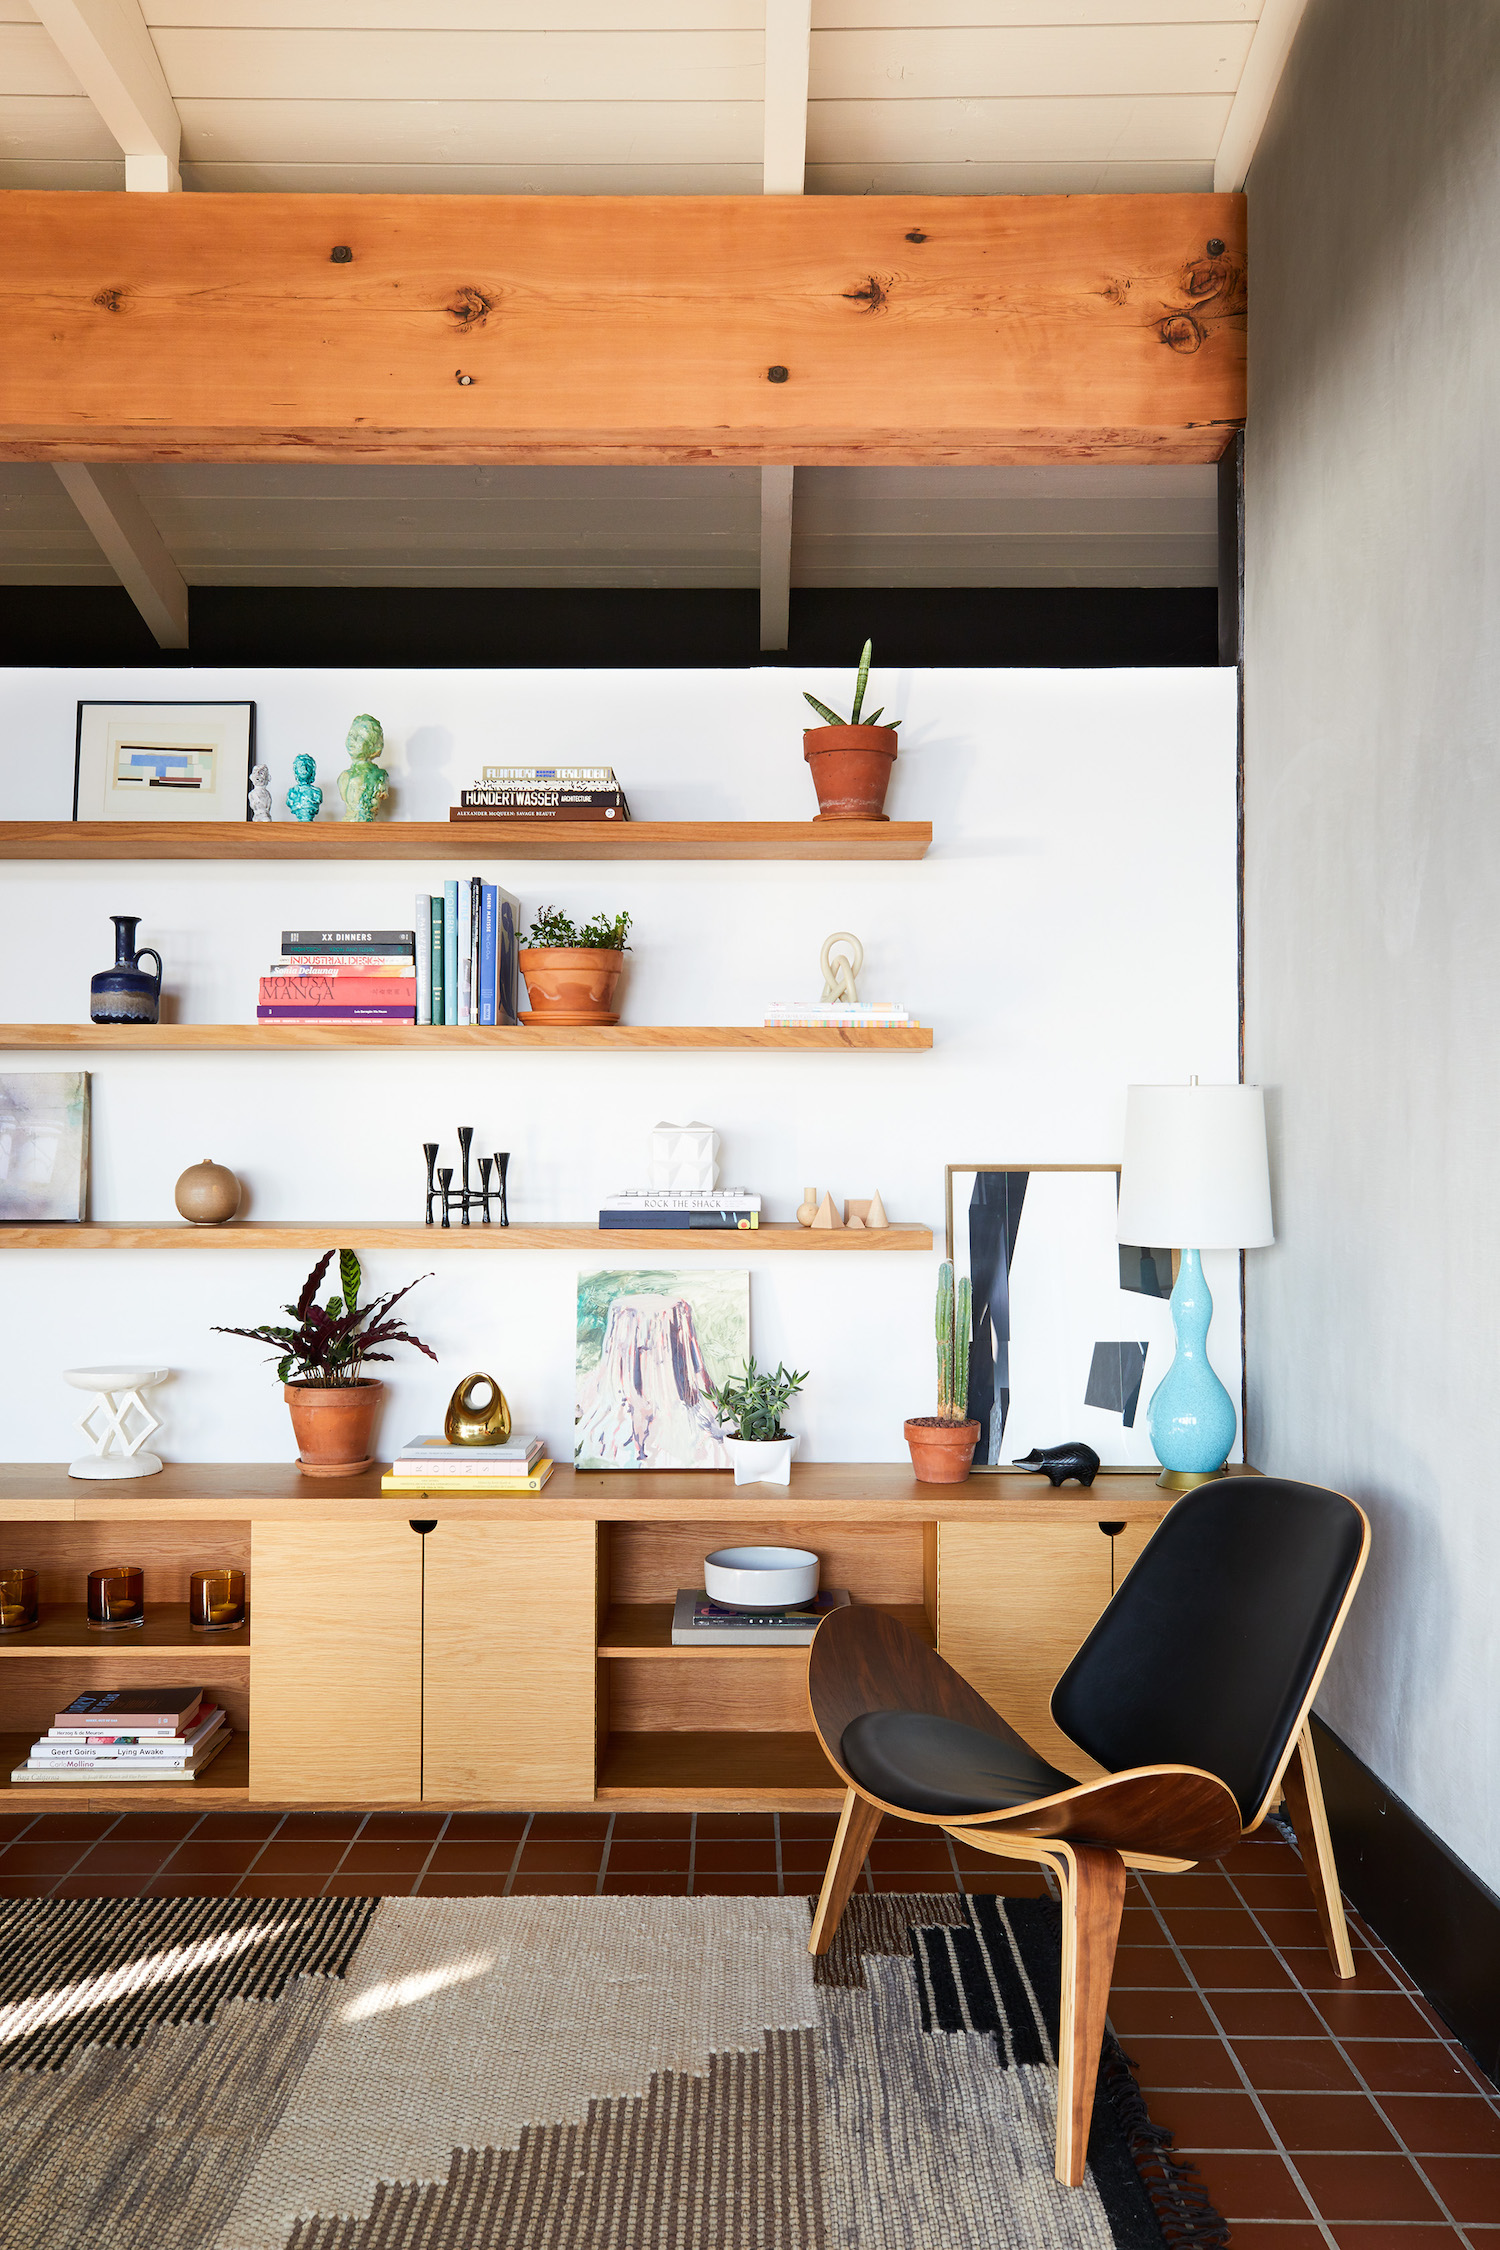 How To Get The Mid-Century Modern Look In A Modern Home